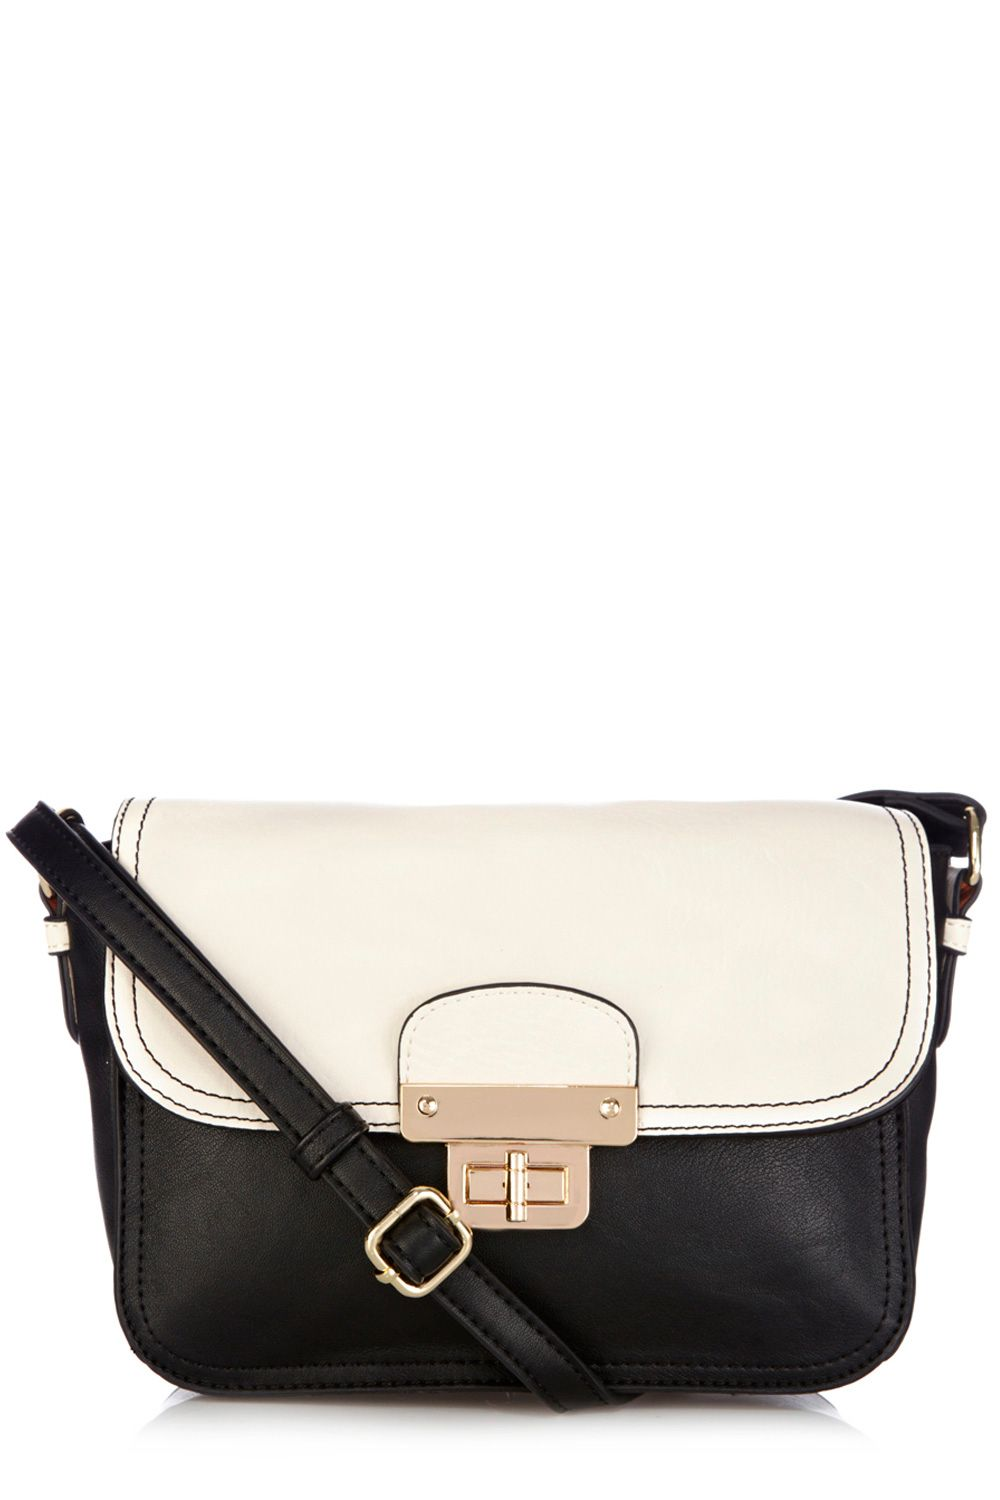 Xandy colour block cross body bag